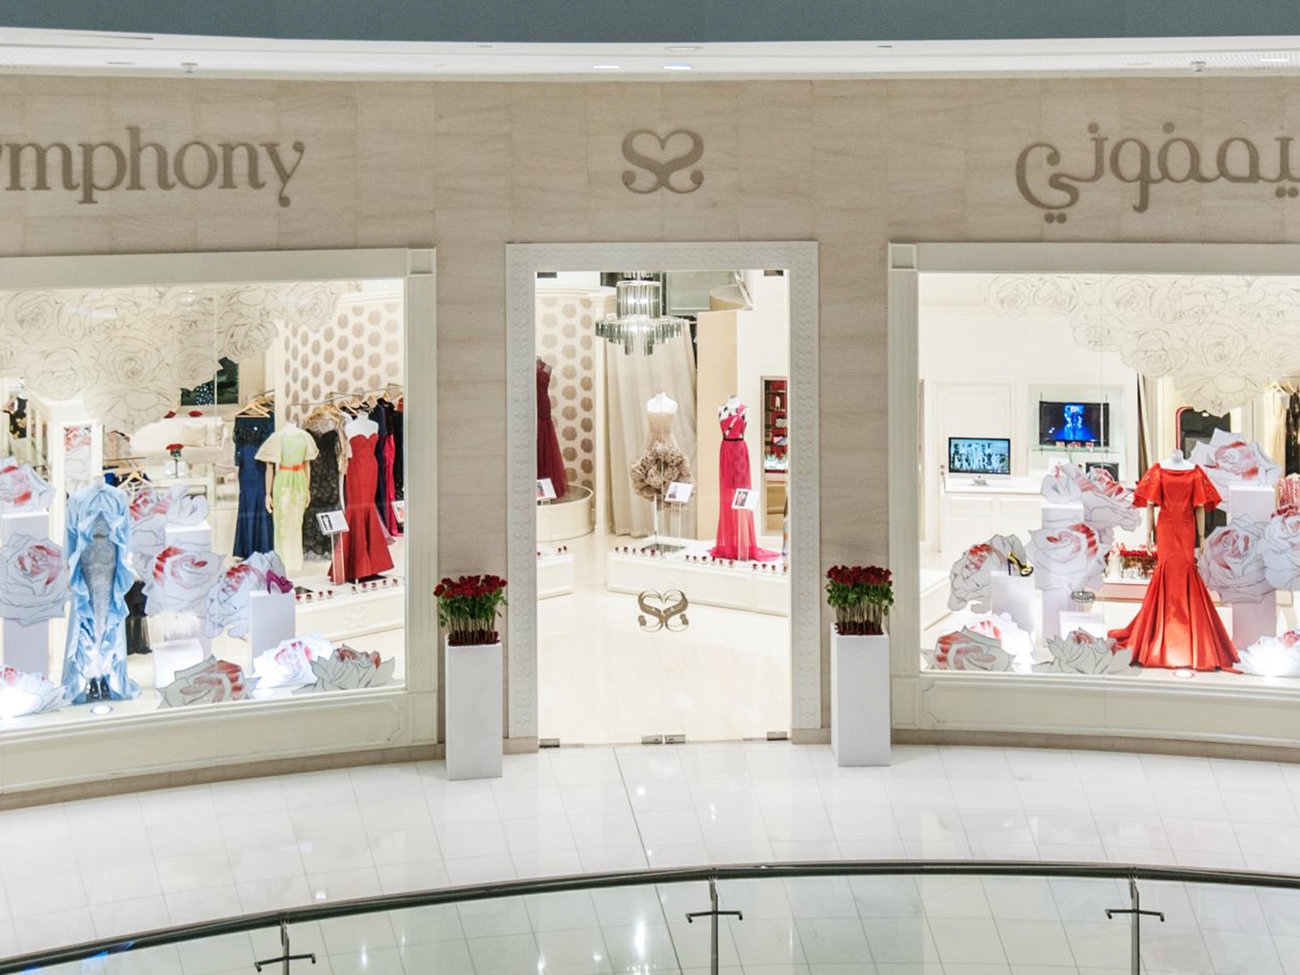 Symphony Shop in Dubai